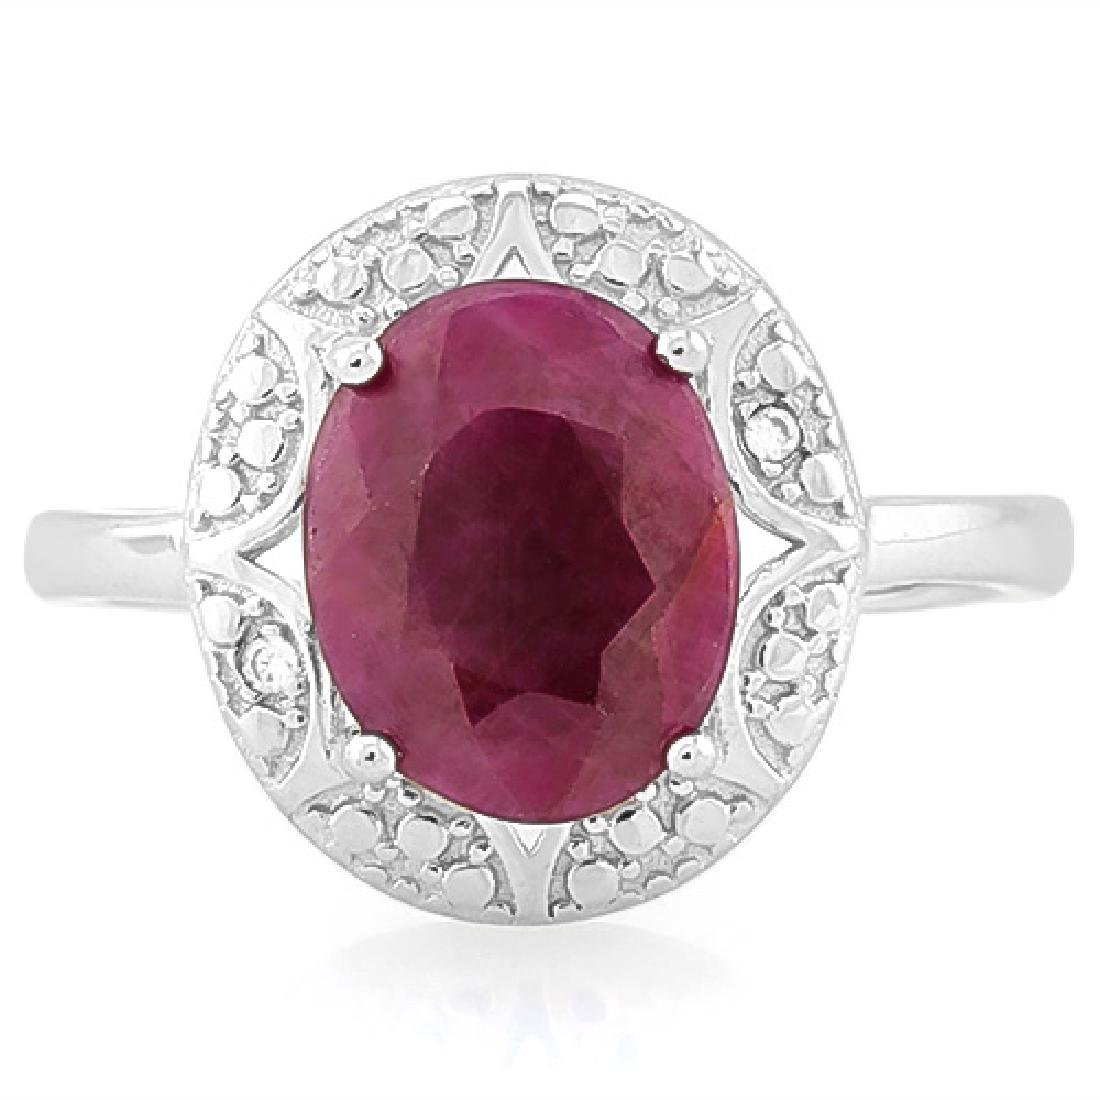 3 1/2 CARAT RUBY & DIAMOND 925 STERLING SILVER RING